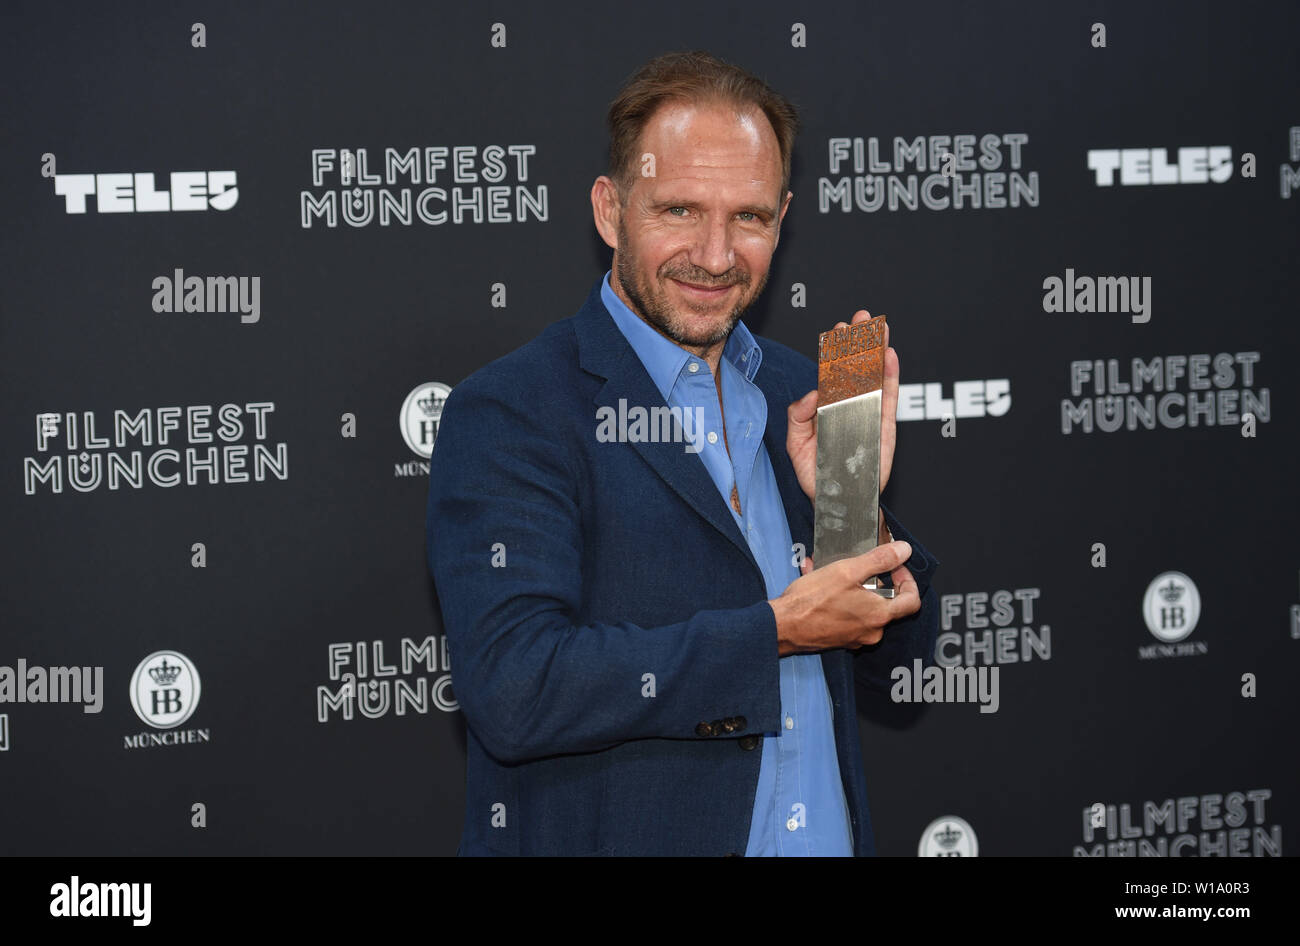 Munich, Germany  01st July, 2019  The actor Ralph Fiennes holds the